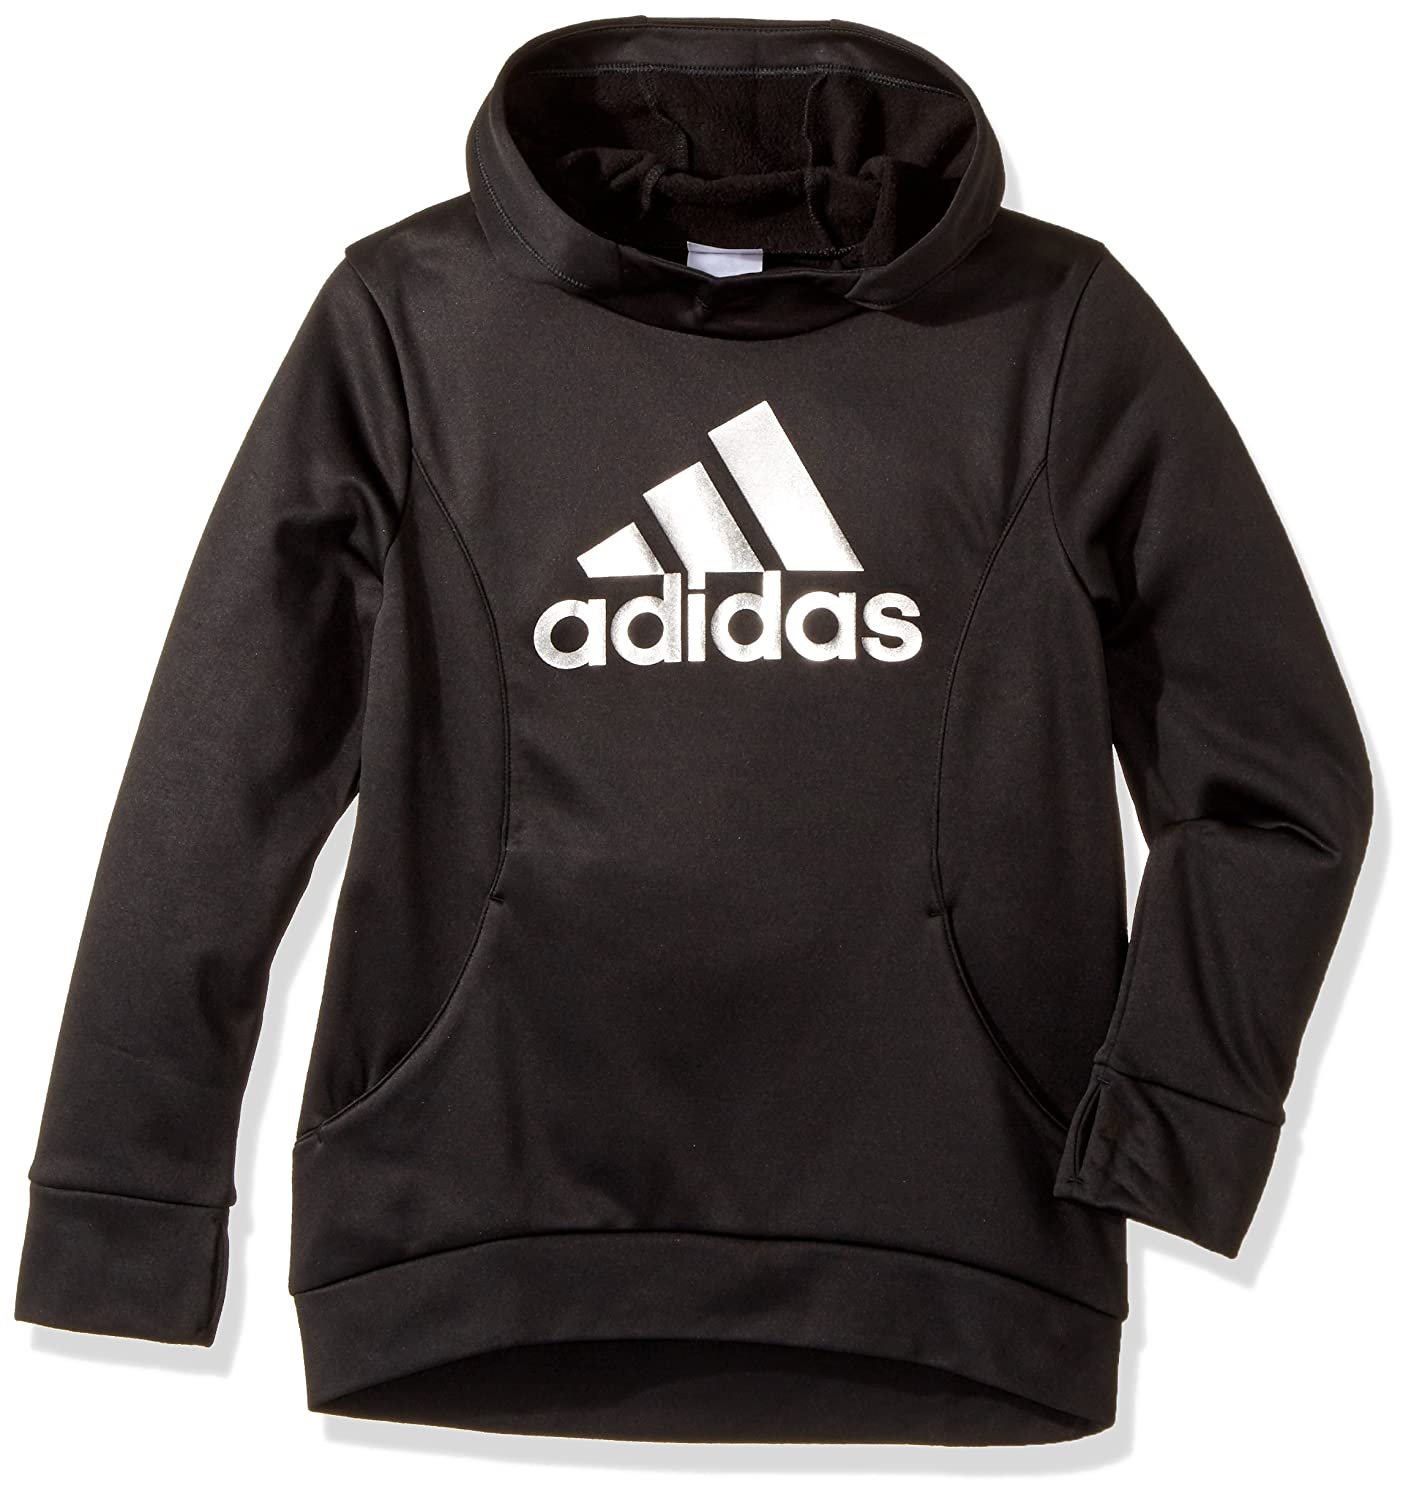 adidas Little Girls\u0027 Performance Hoodie